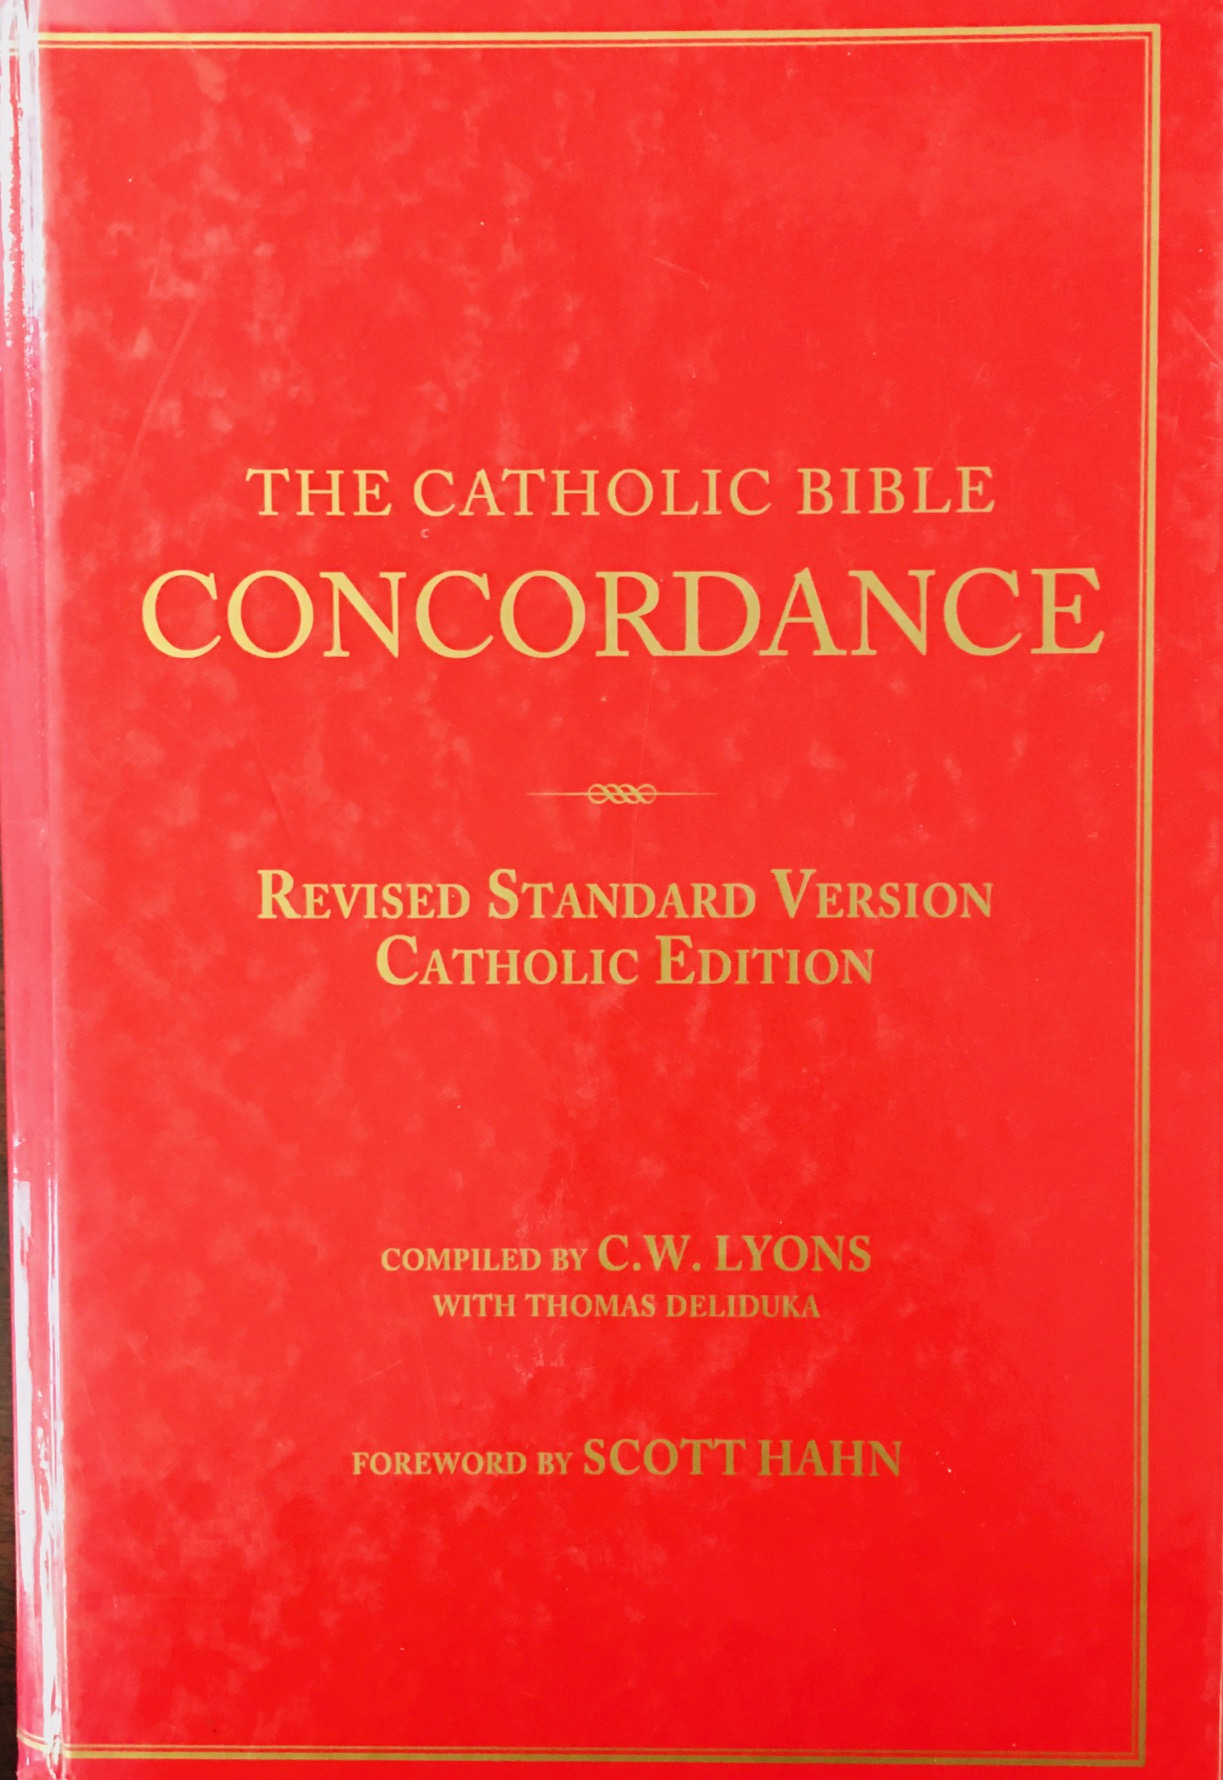 Image for The Catholic Bible Concordance for the Revised Standard Version Catholic Edition (RSV-CE)